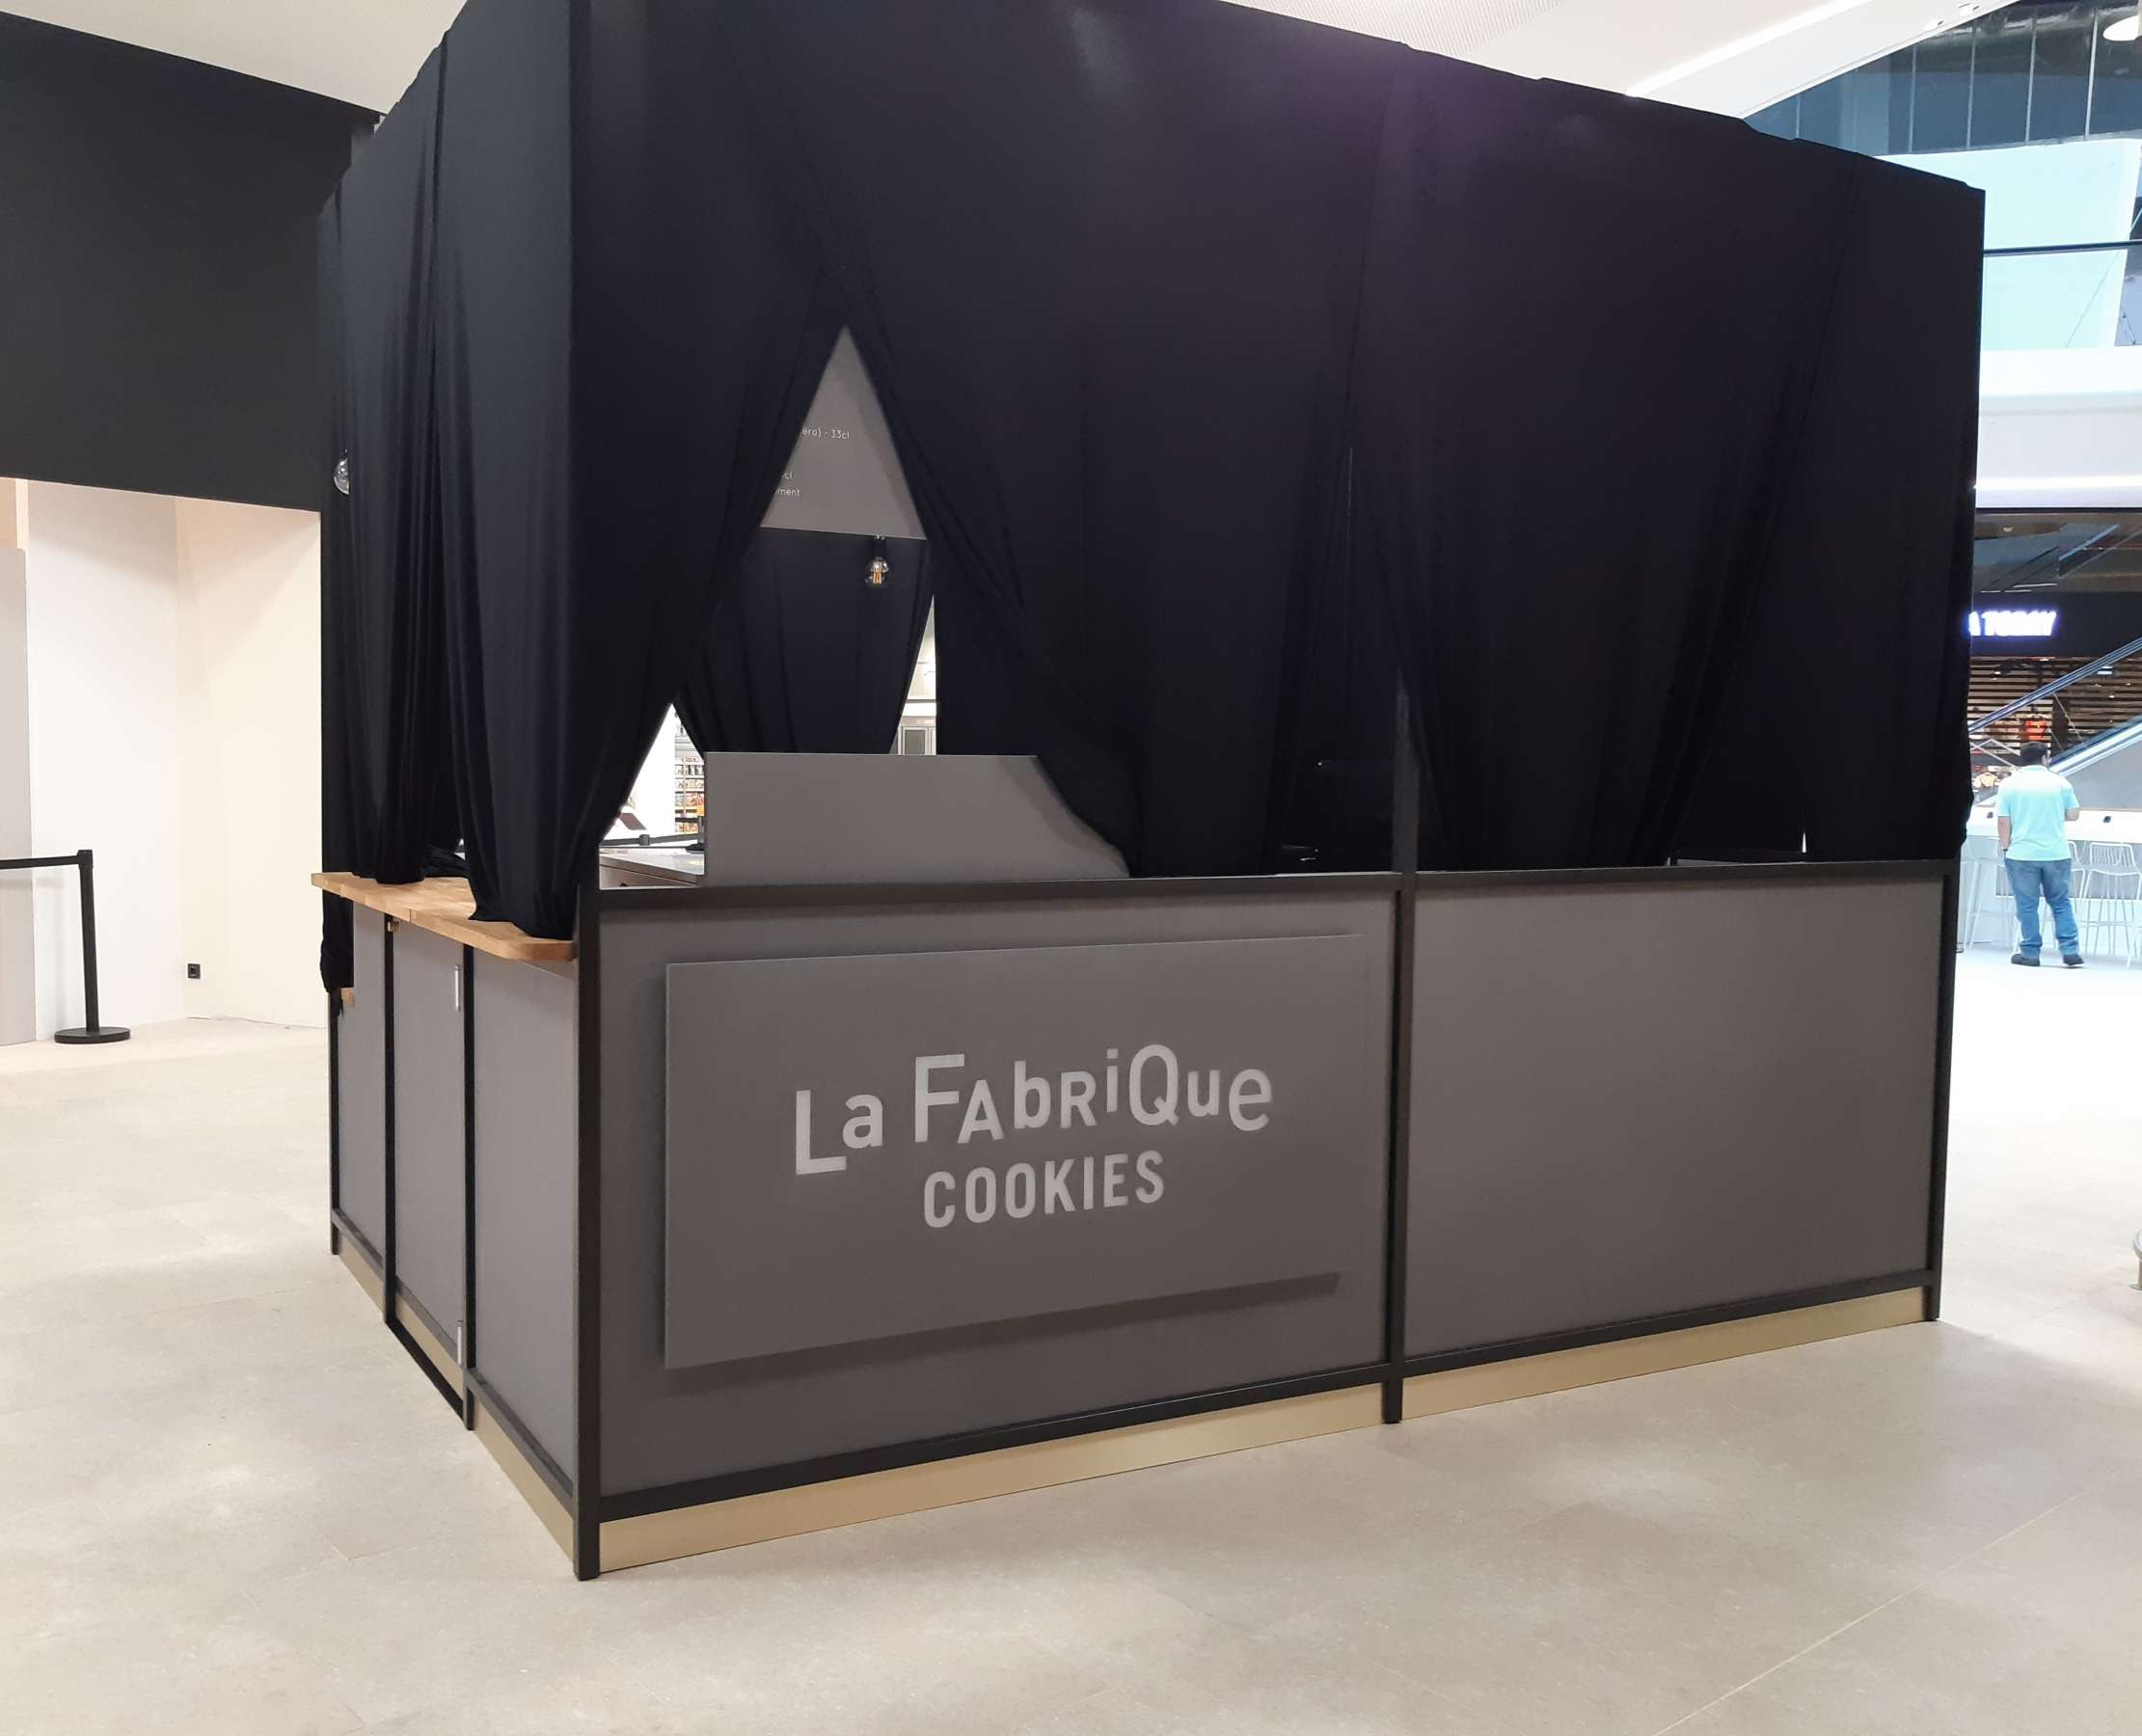 Kiosque La Fabrique Cookies